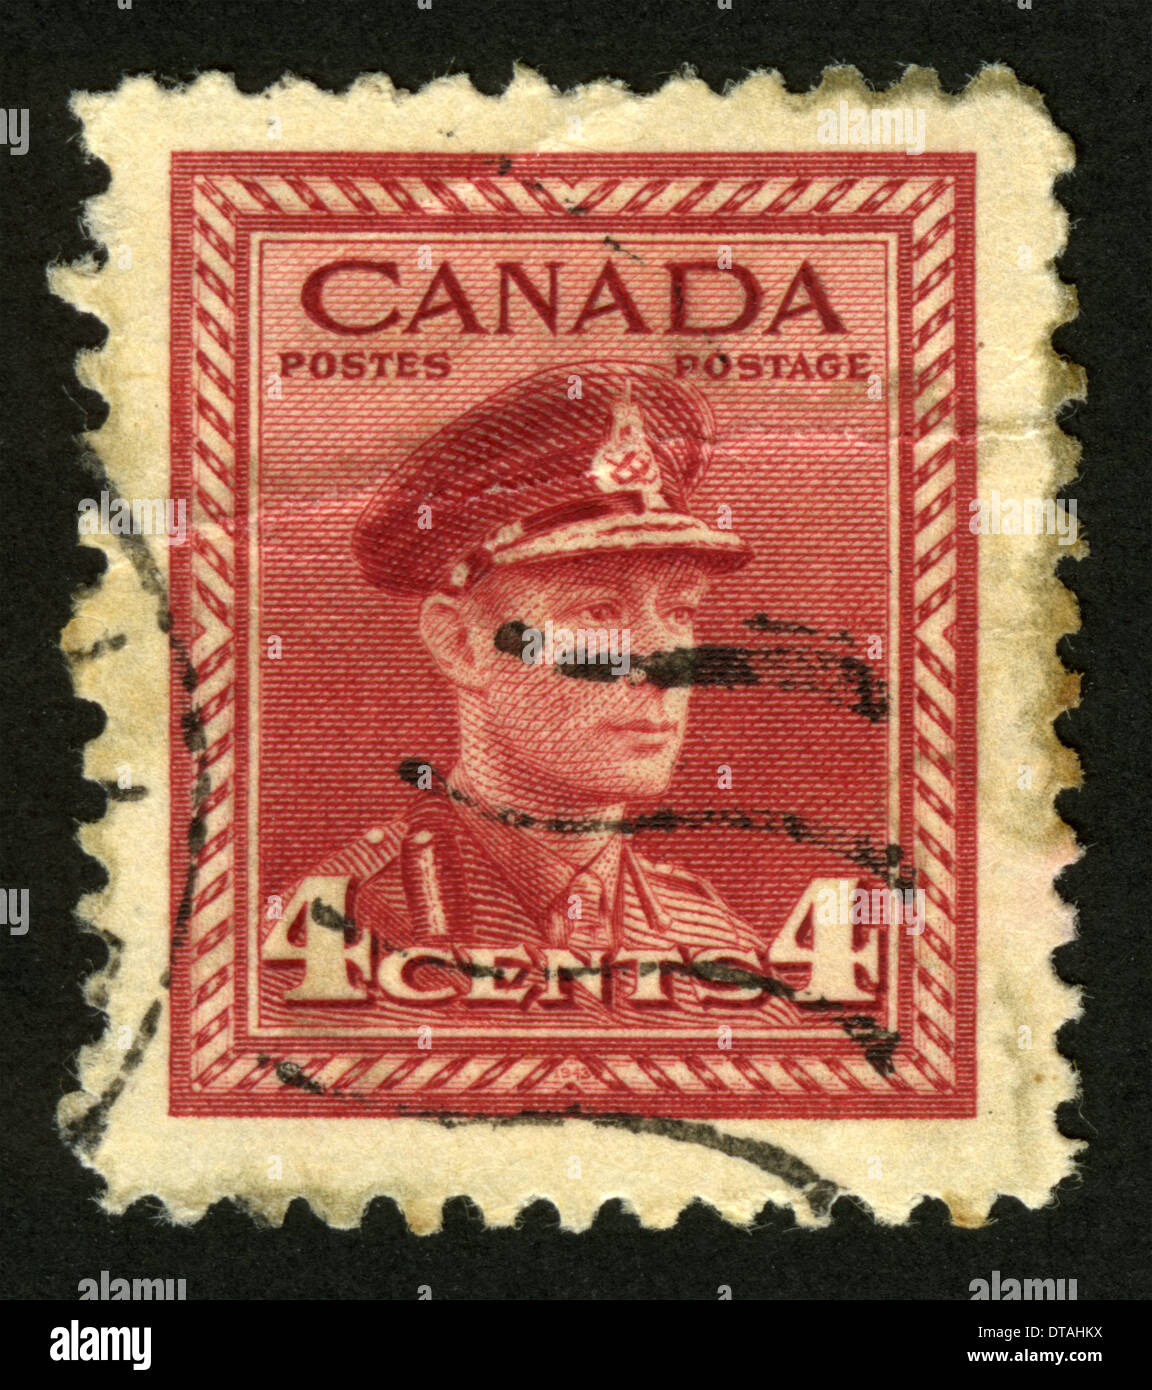 Canadian Postage Stamp Canada King George Vi Stock Photo